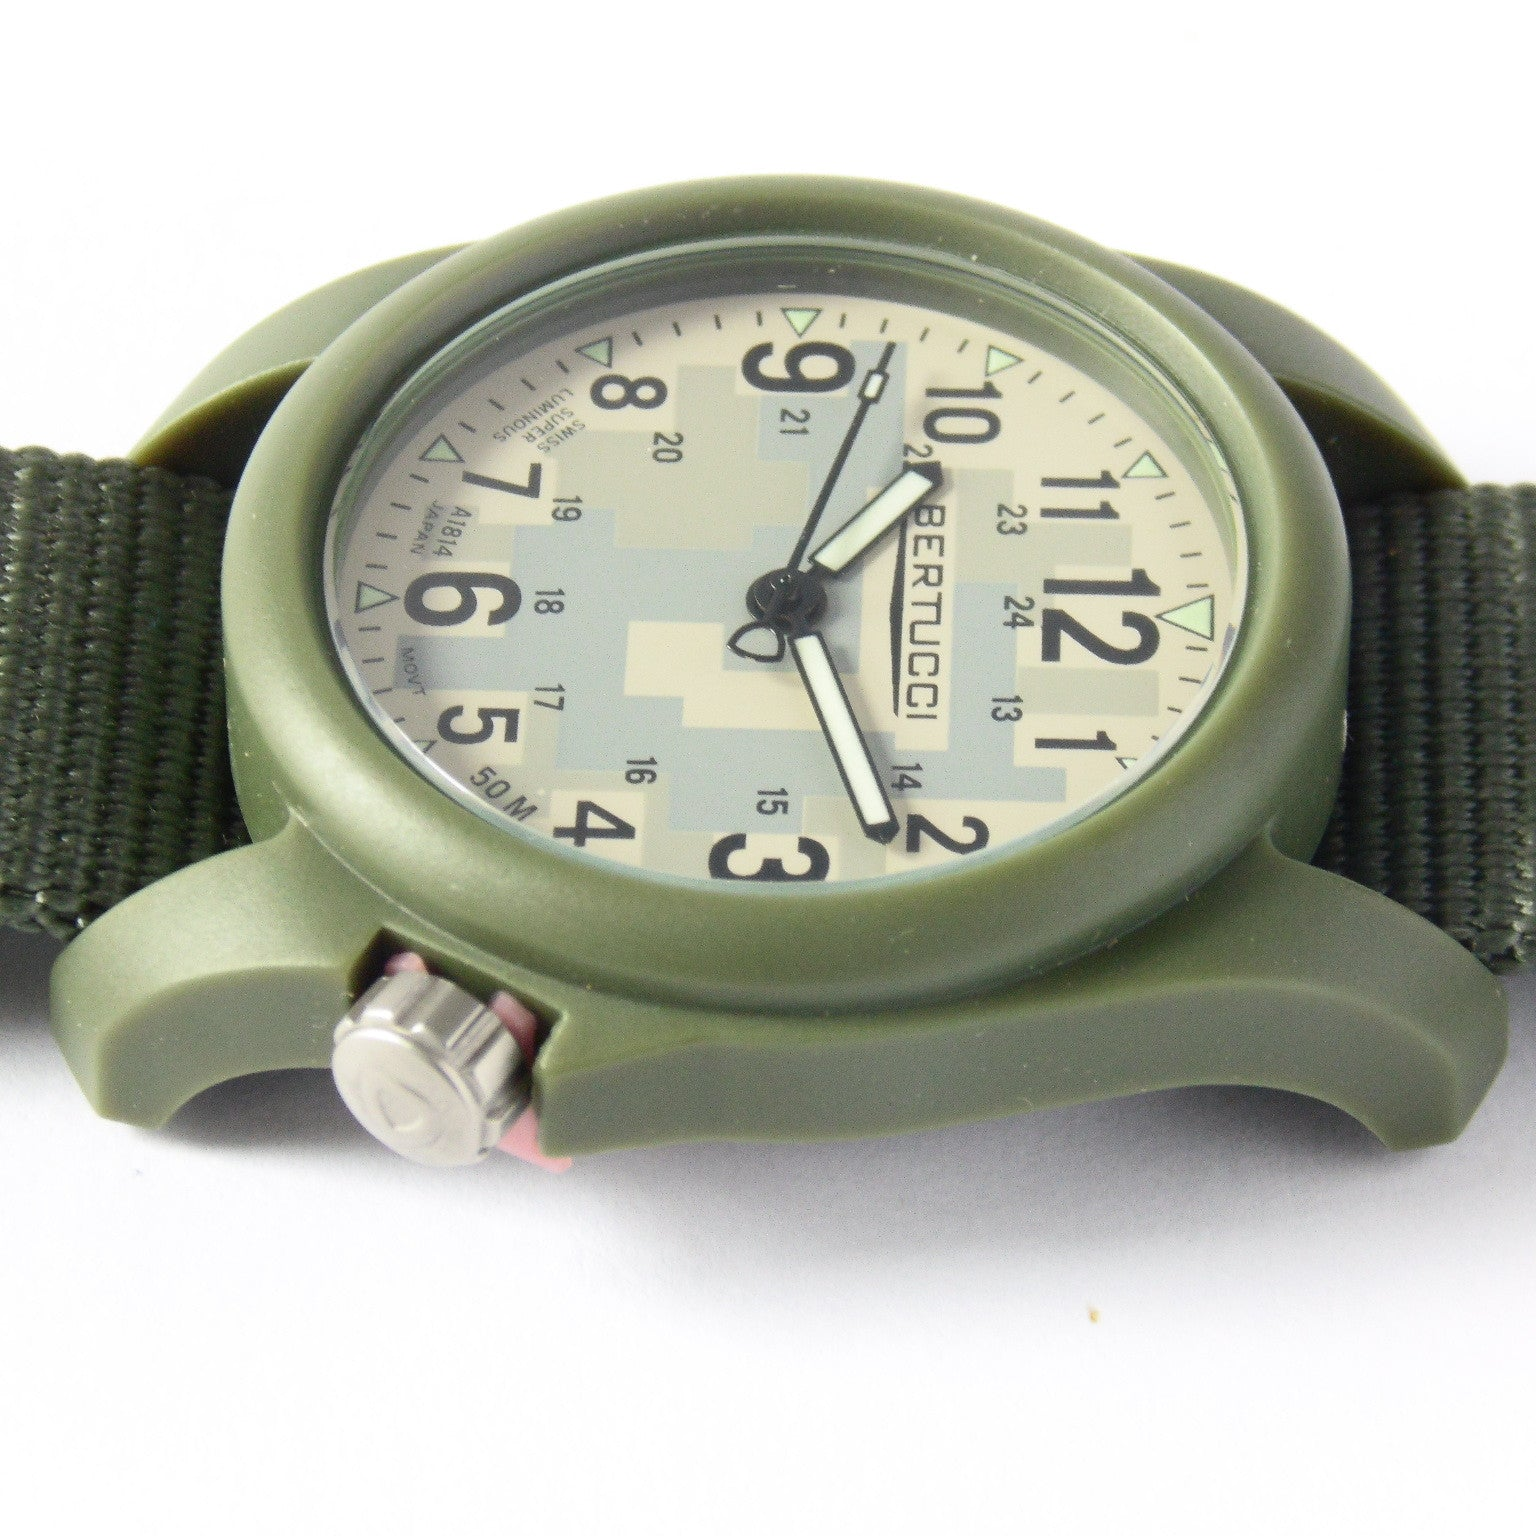 Bertucci DX3 Field Resin Watch, Olive Drab Nylon Strap, Digicam Camouflage Dial 11032 - Watchfinder General - UK suppliers of Russian Vostok Parnis Watches MWC G10  - 4